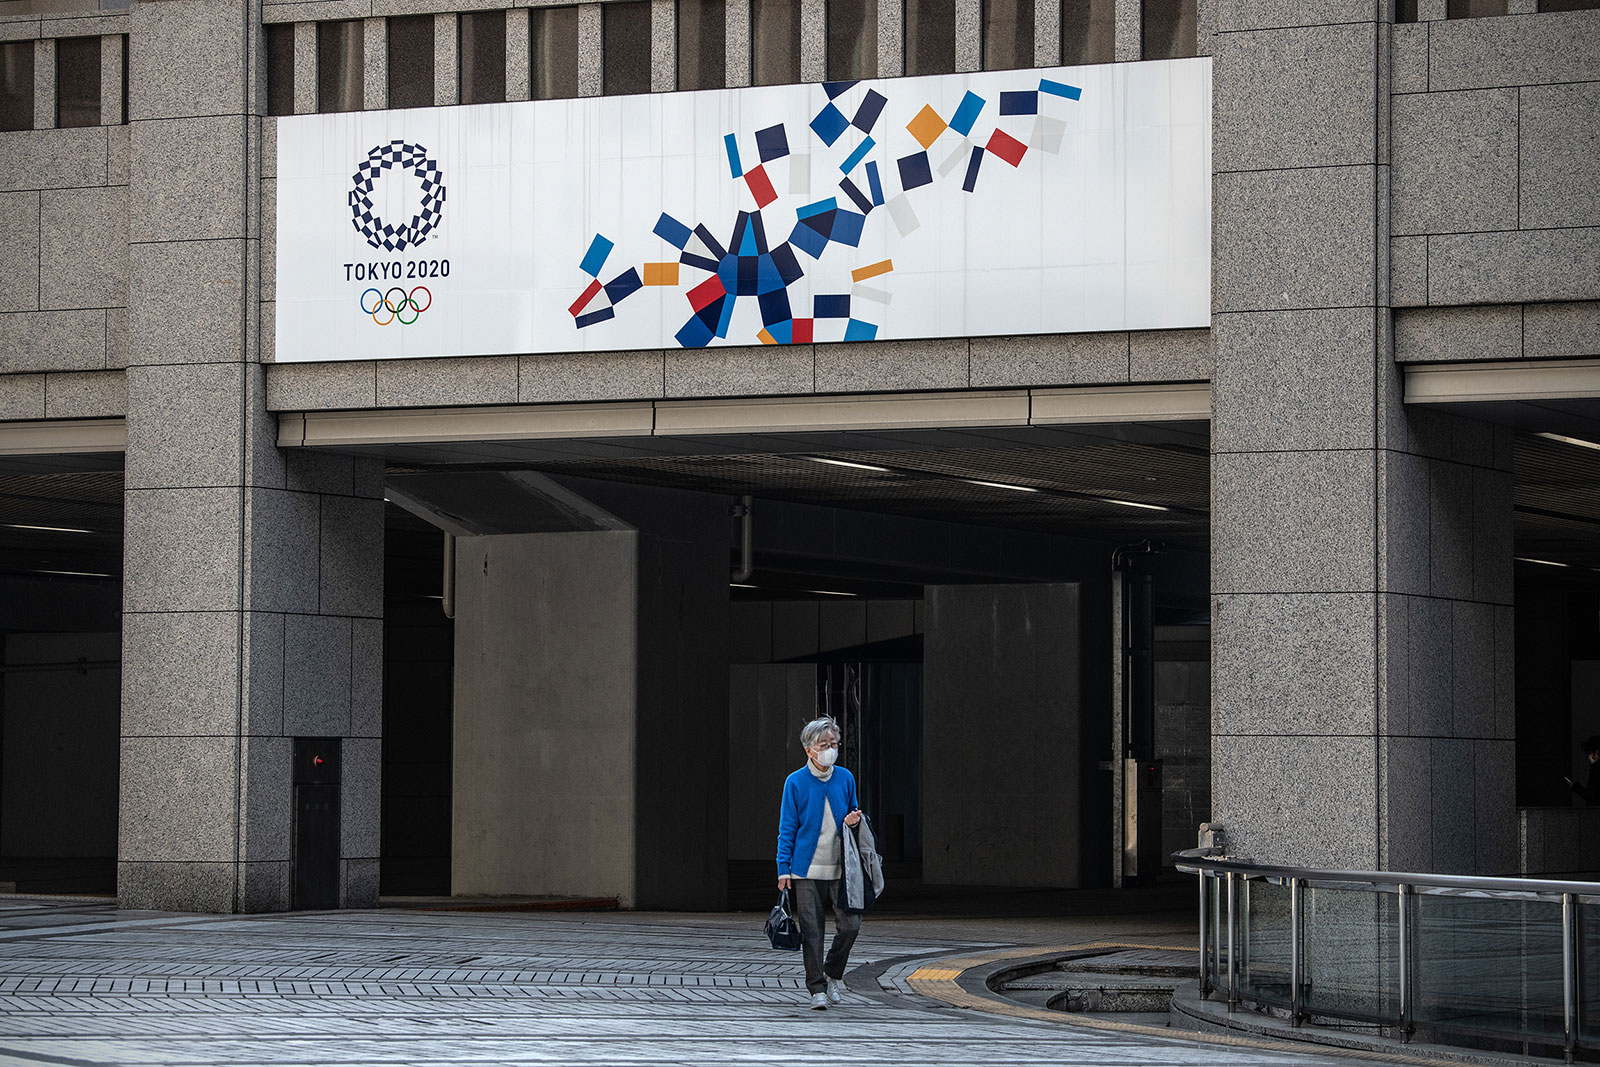 A woman walks beneath a Tokyo 2020 banner on March 19, in Tokyo, Japan.